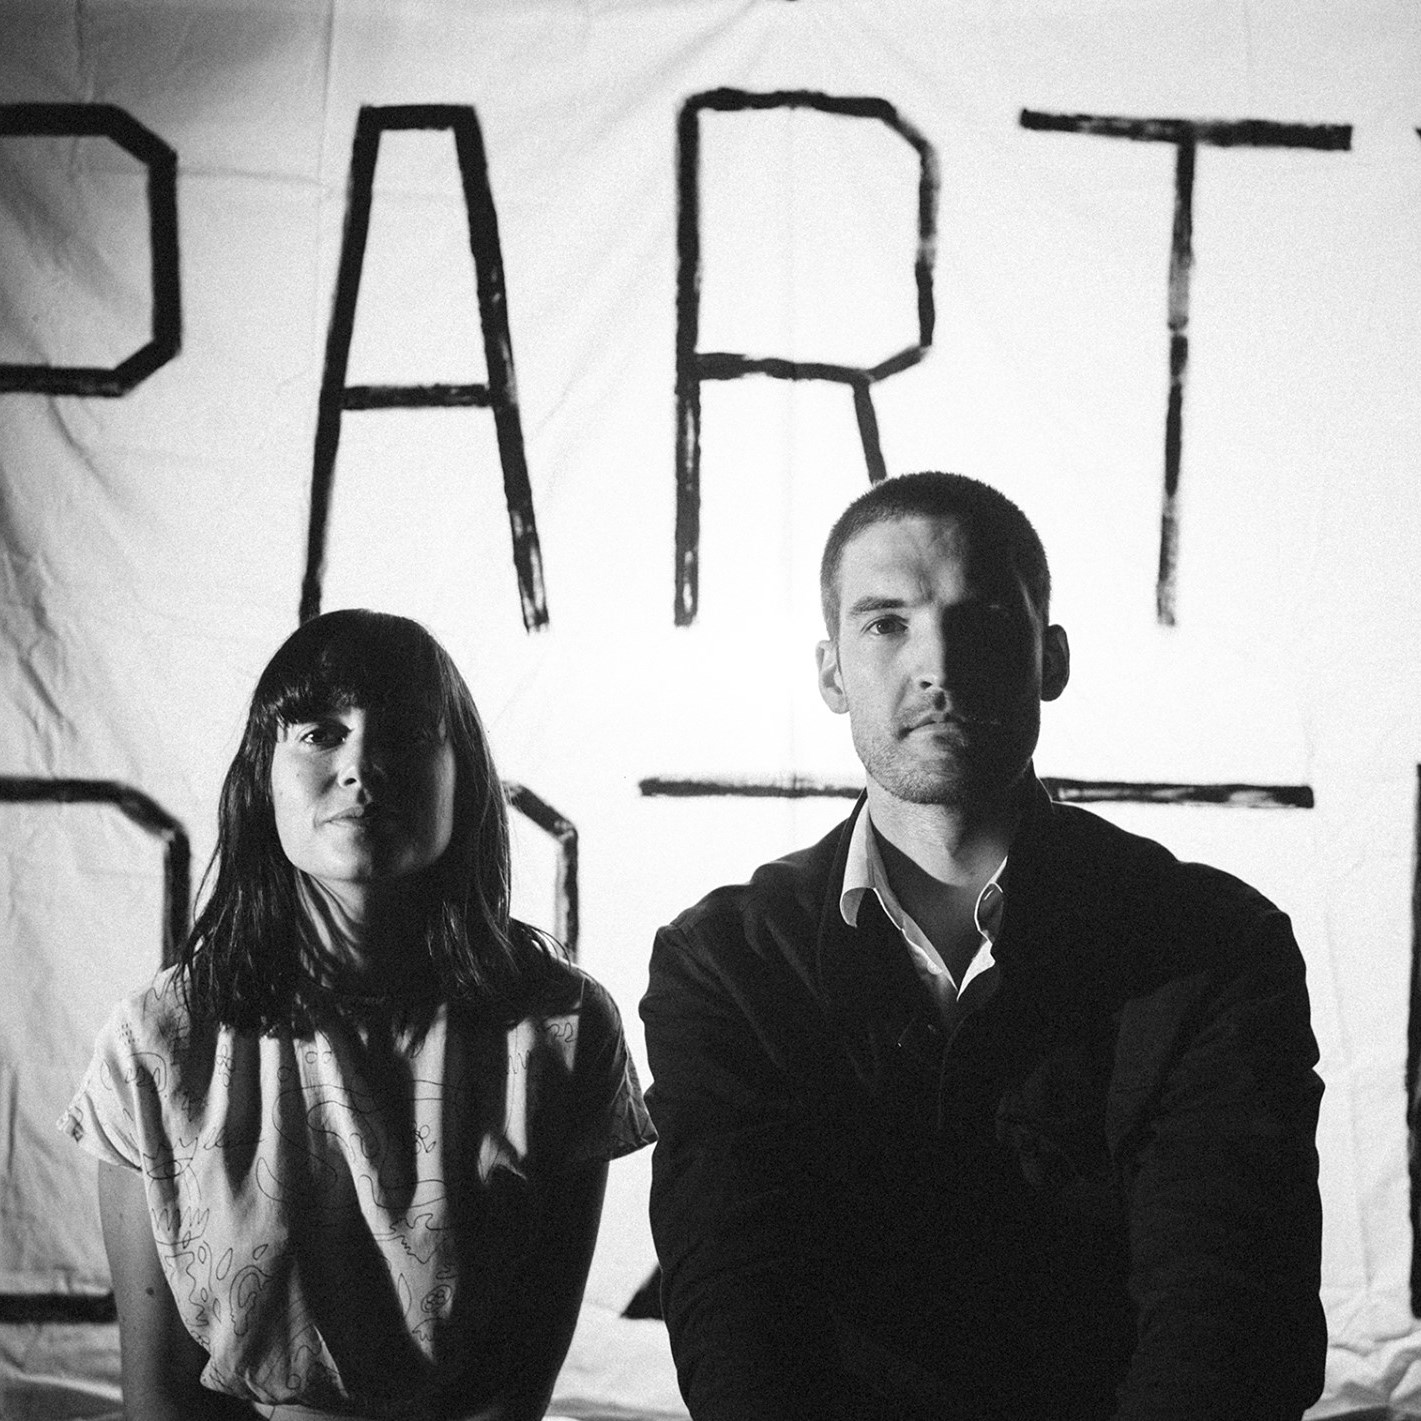 PARTY DOZEN - Party Dozen are a two piece band from Sydney who create experimental and improvisational music. We can't wait to see them play at our upcoming all ages fundraiser show on the 5th November! We had a chat to Kirsty to learn a bit more about Party Dozen and their creative processes.